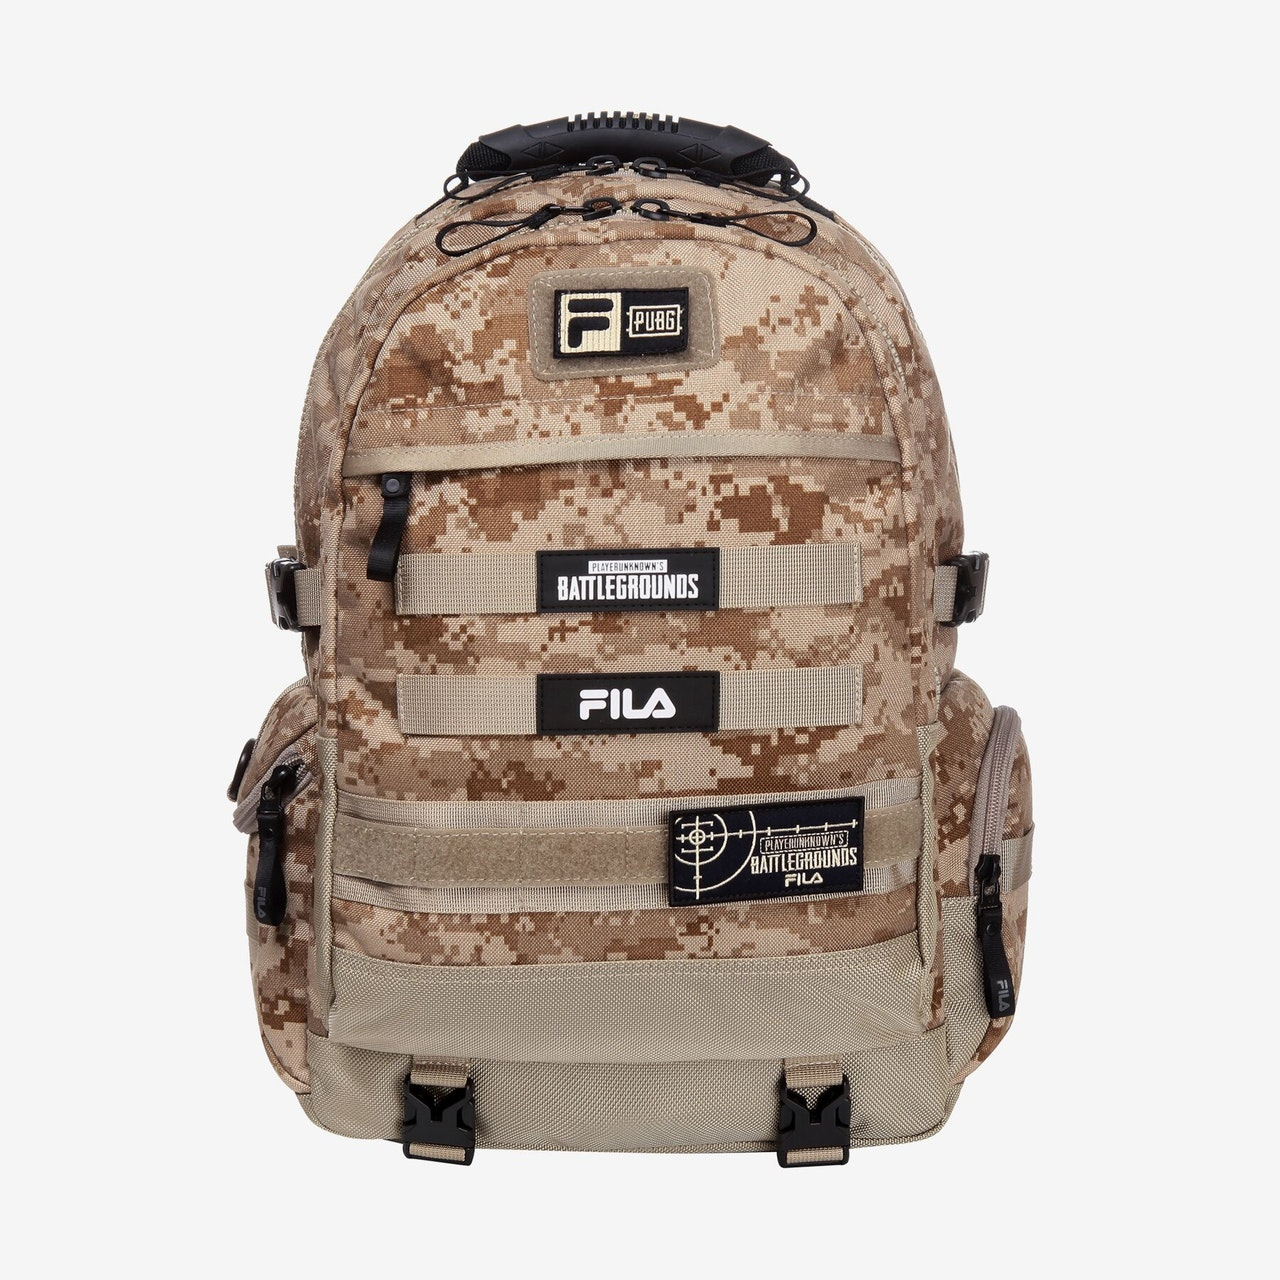 633d884977fe The Official FILA x PUBG Capsule Collection Brings Your Battle Royale  Dreams to Life